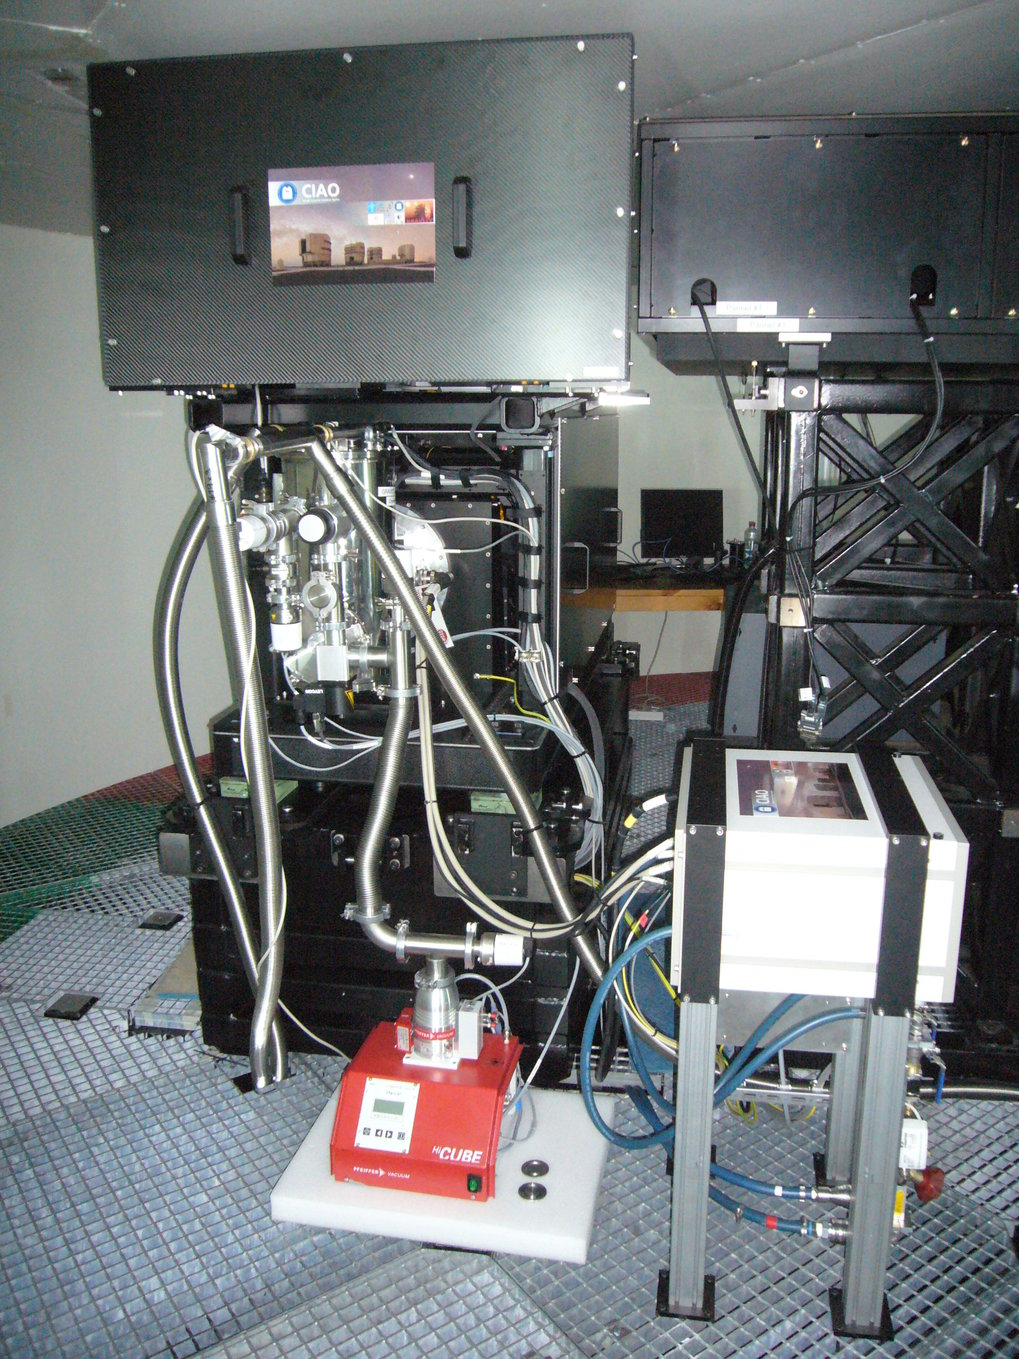 The first CIAO wavefront sensor system installed in the Coude-Room of the VLT-Unit 1 - Telescope at Paranal Observatory